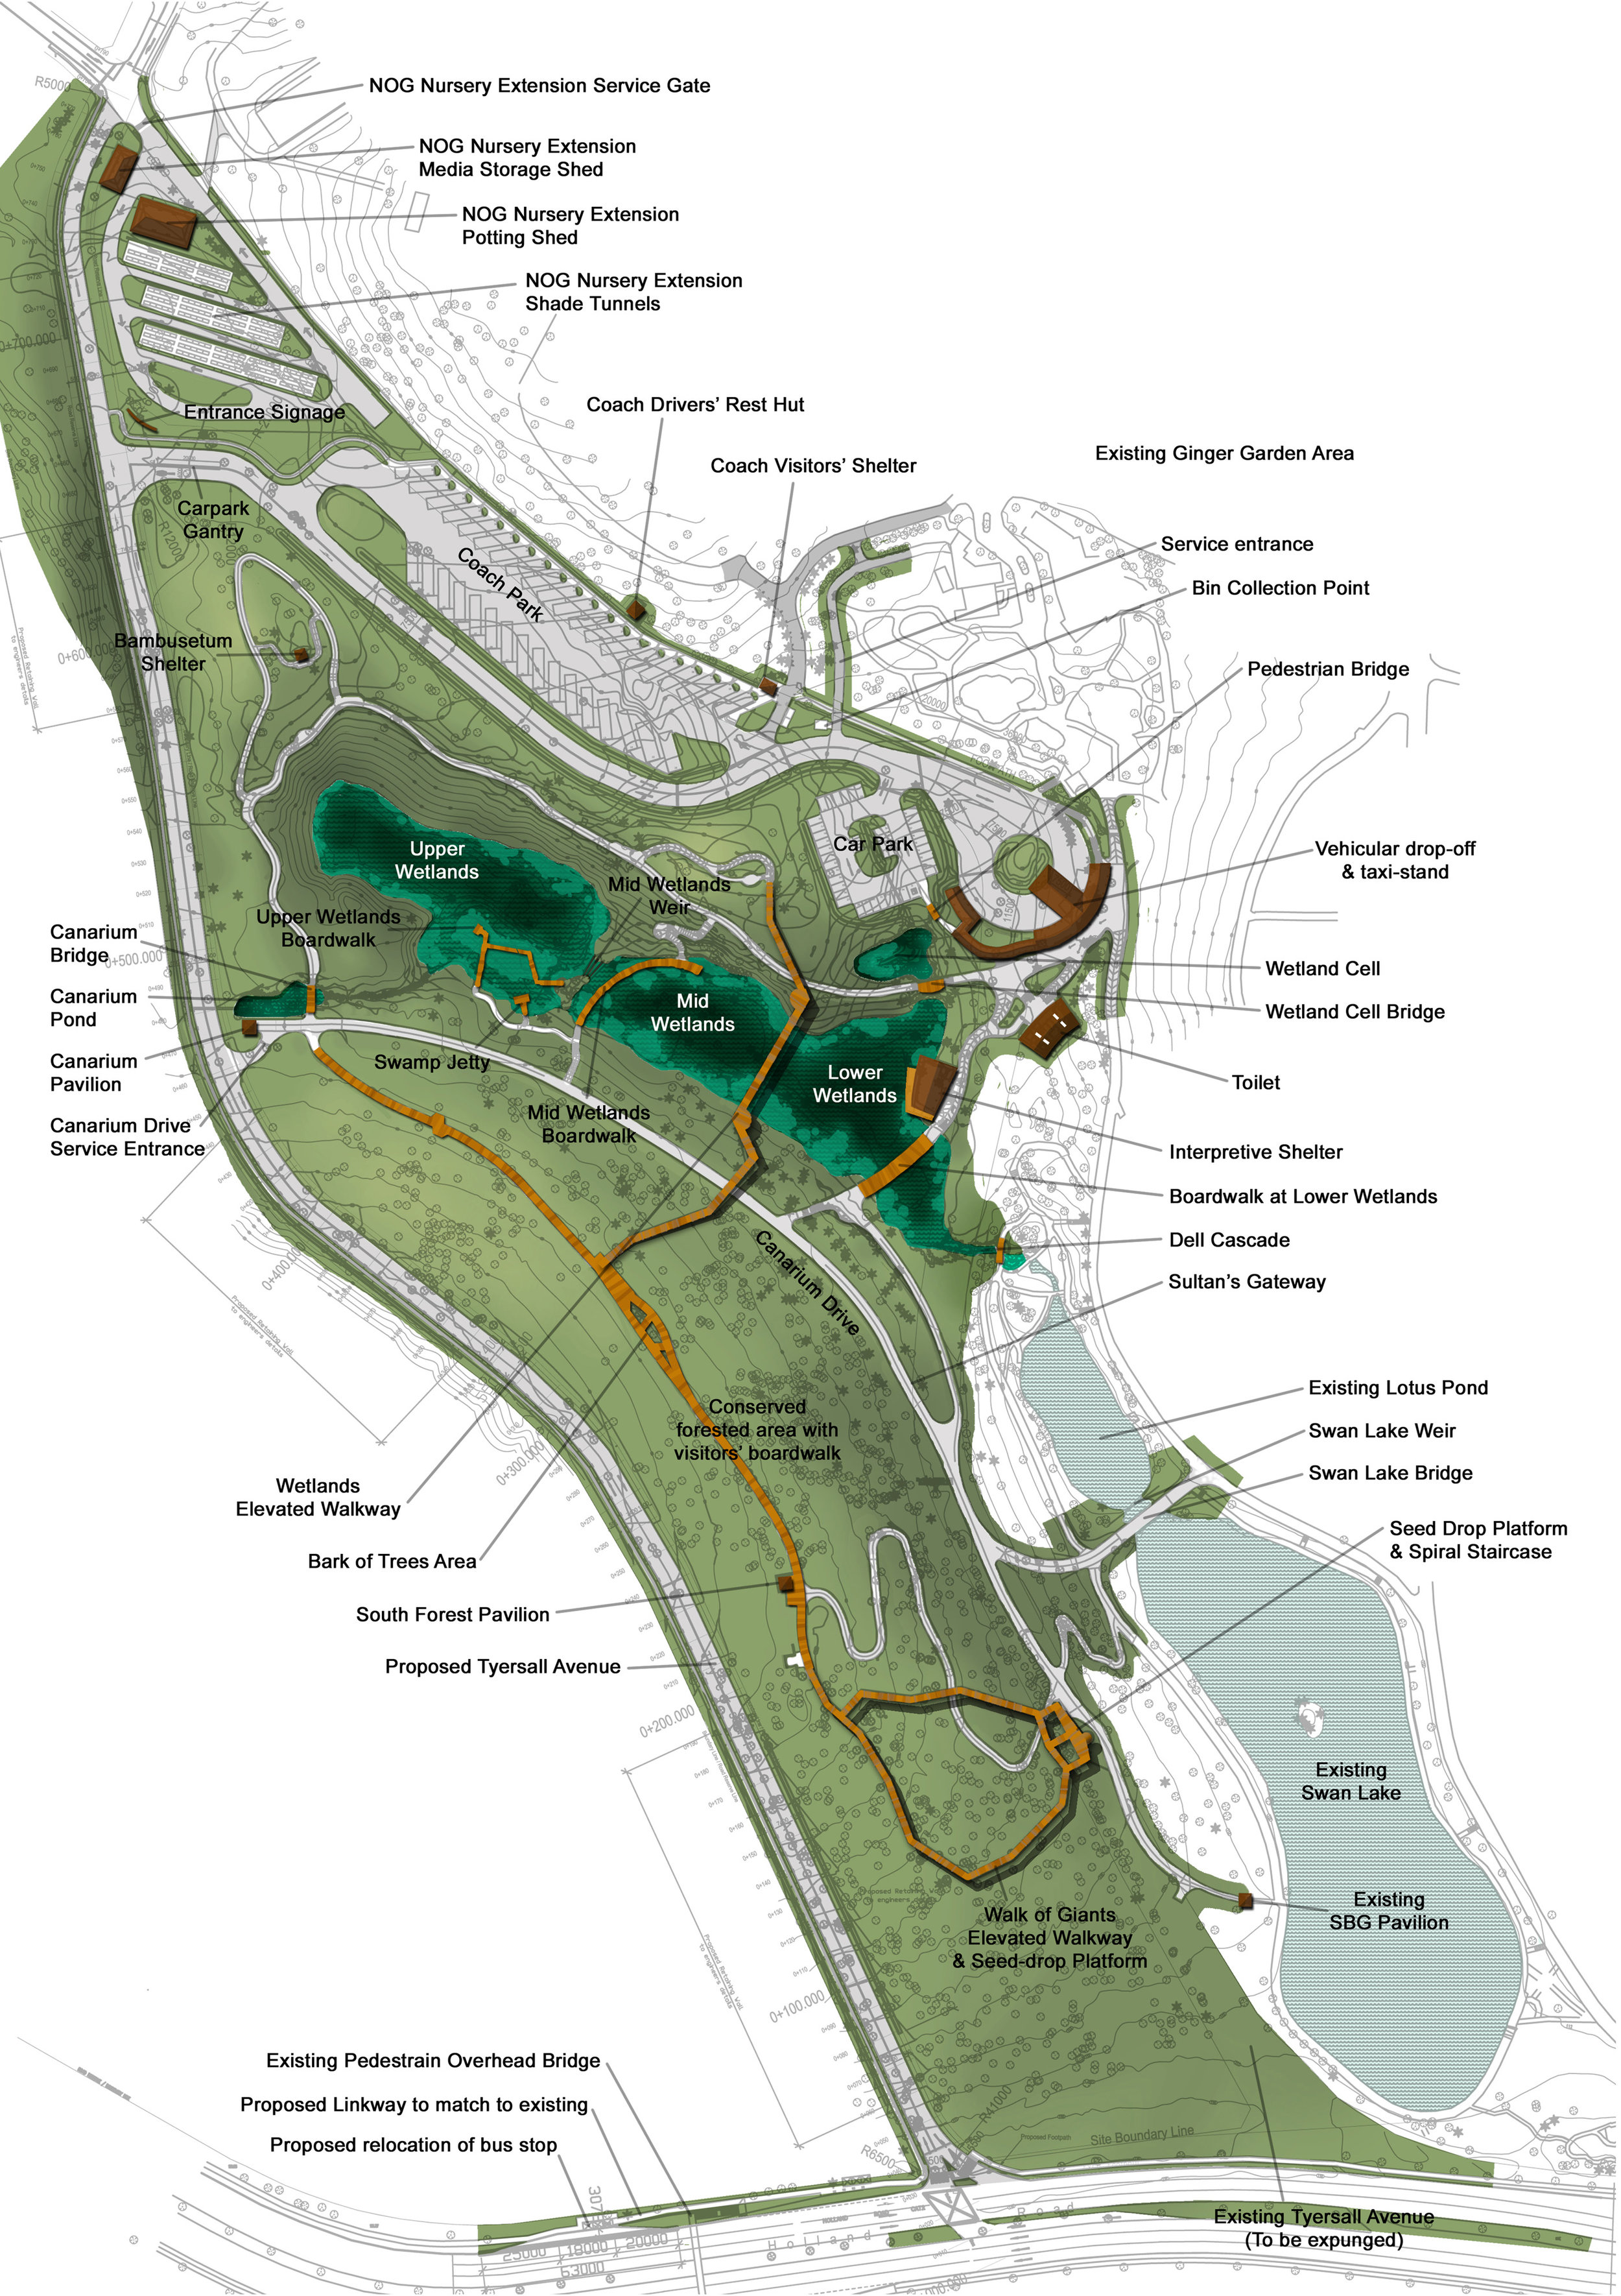 Masterplan of The Learning Forest Singapore Botanic Gardens - Stephen Caffyn Landscape Design